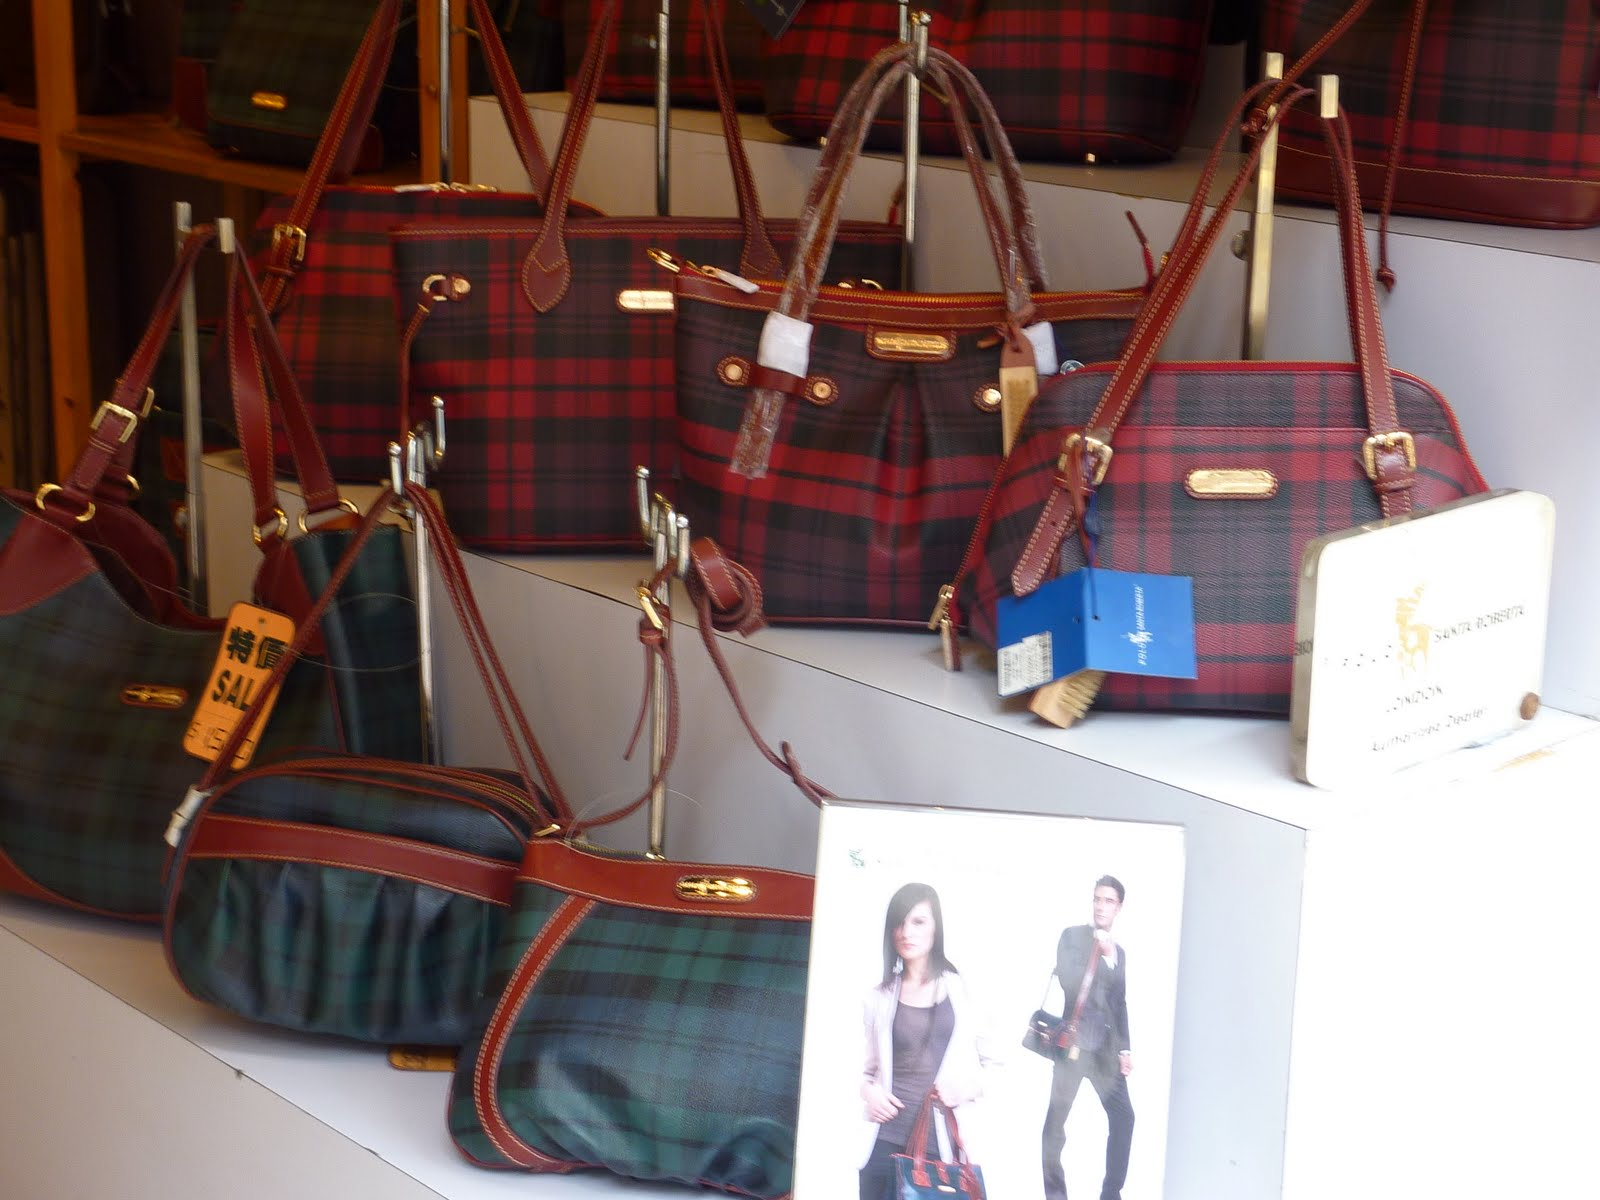 ... ralph lauren red tartan plaid dr 09871 c8a69  new zealand still polo  santa roberta bags use burberry like tartan patterns cb9f6 40c16 0c554ccca9